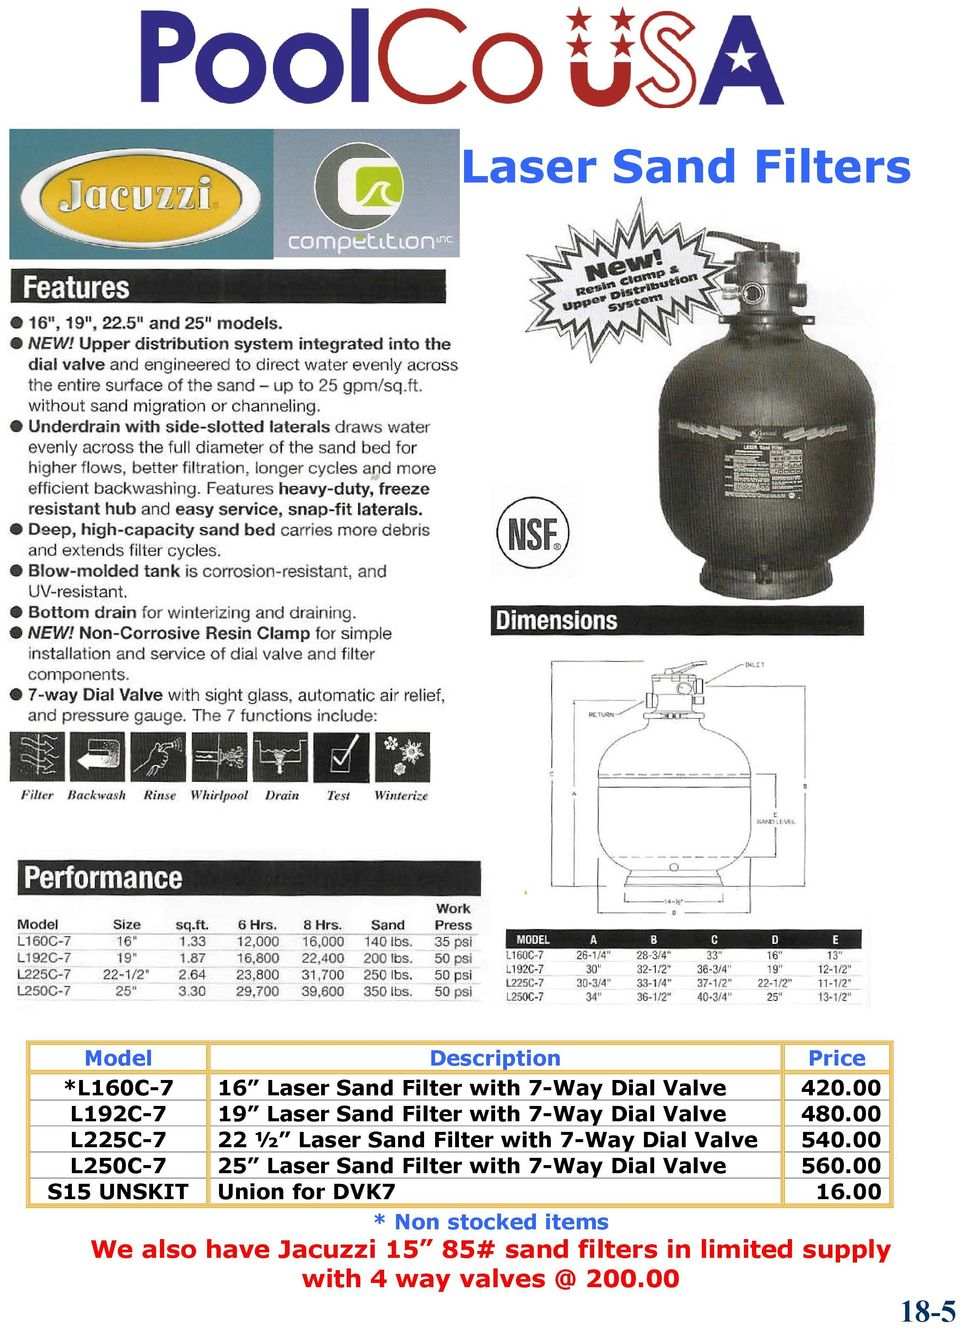 00 L225C-7 22 ½ Laser Sand Filter with 7-Way Dial Valve 540